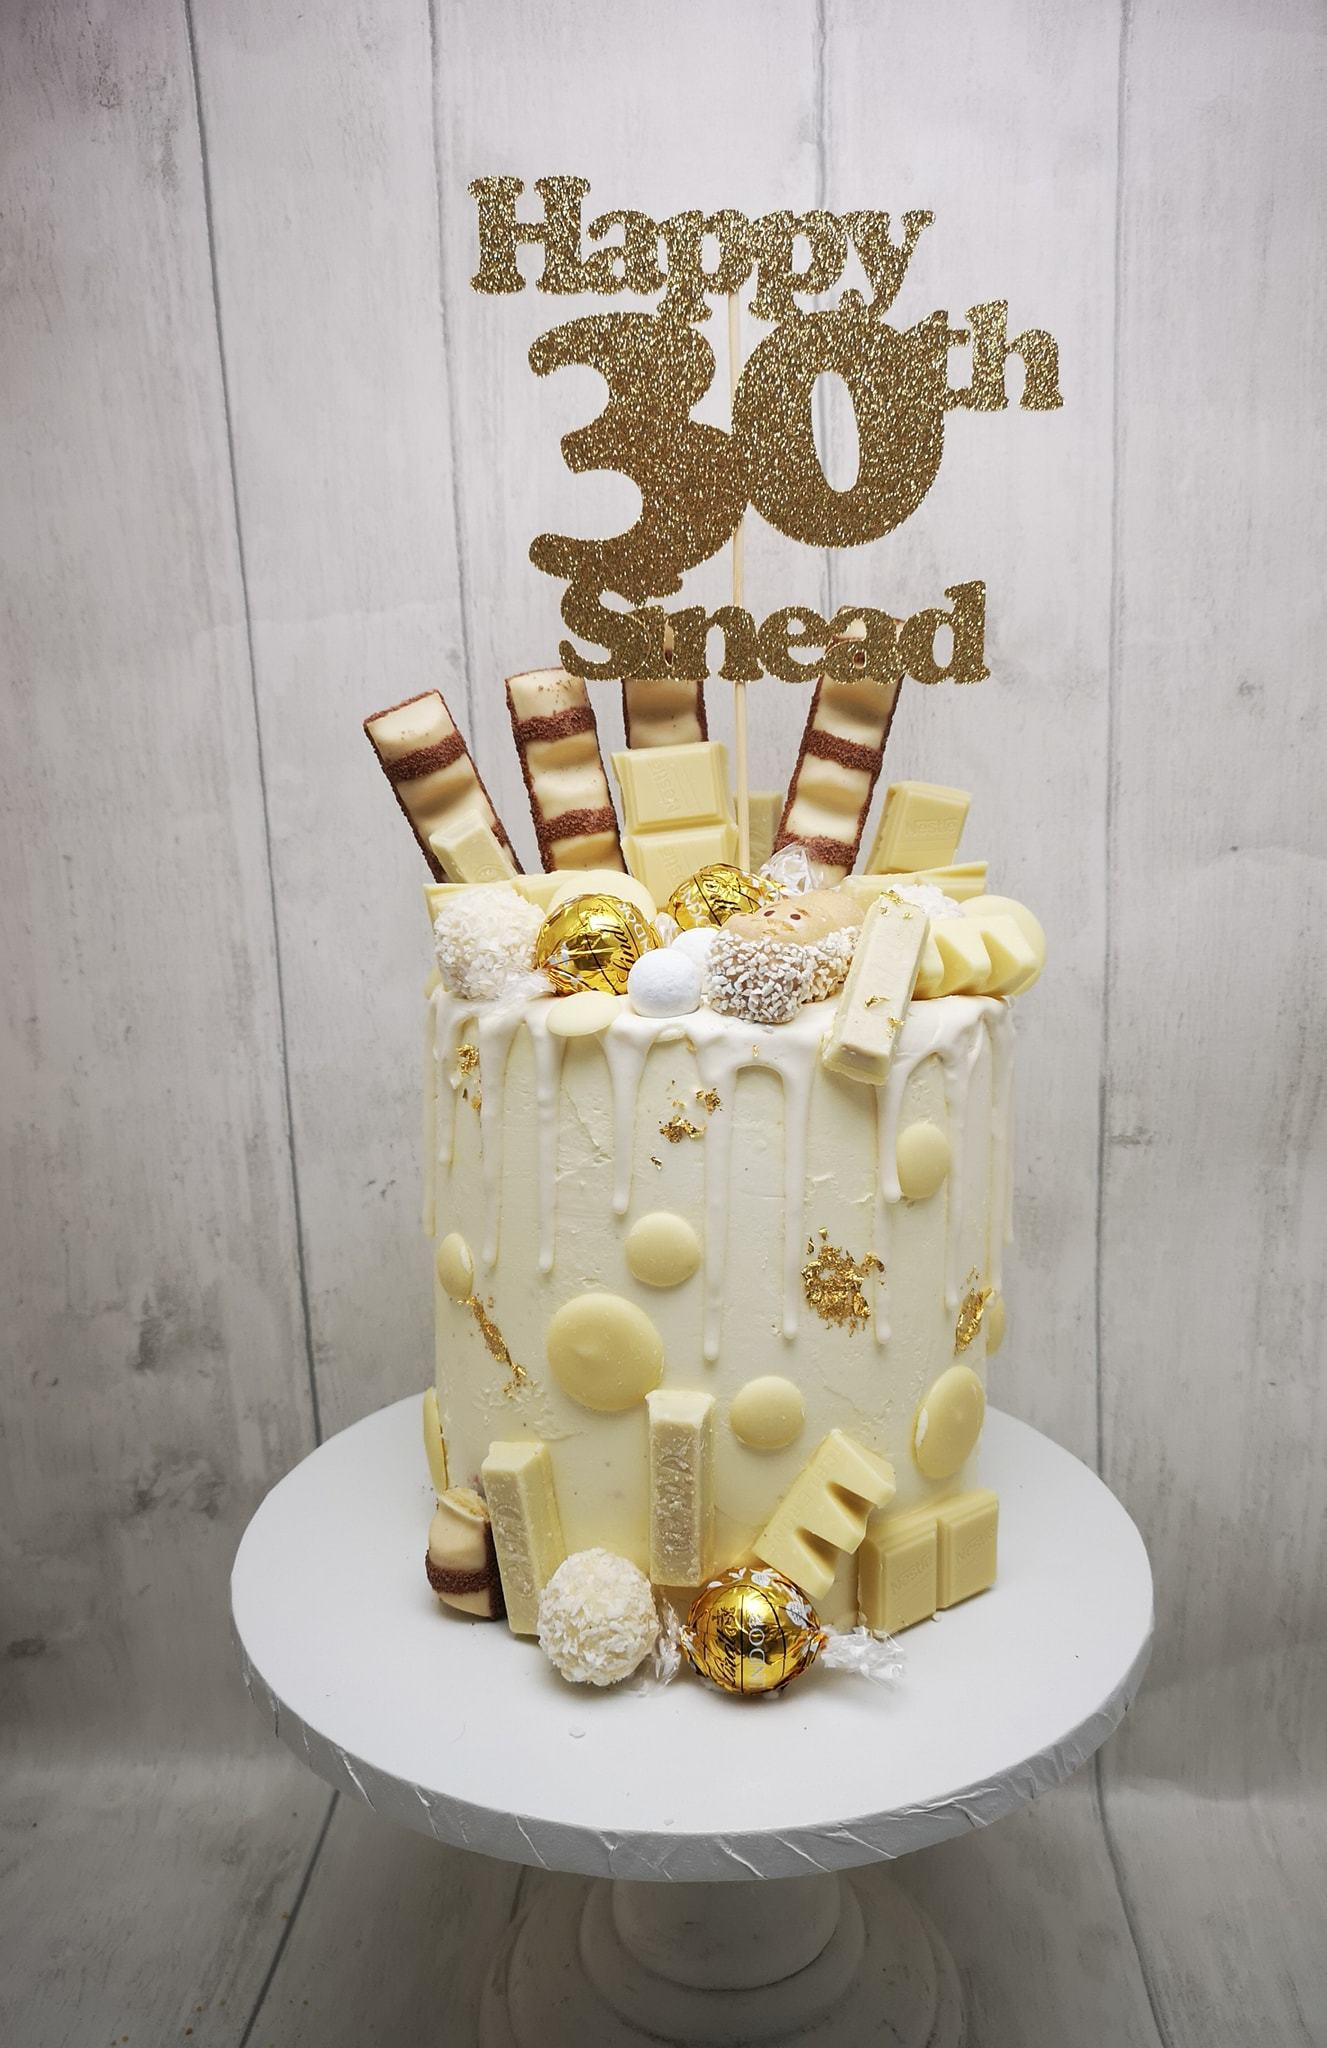 Astounding 30Th Birthday Cakes 40Th Birthday Cakes Must See Ideas Here Funny Birthday Cards Online Elaedamsfinfo